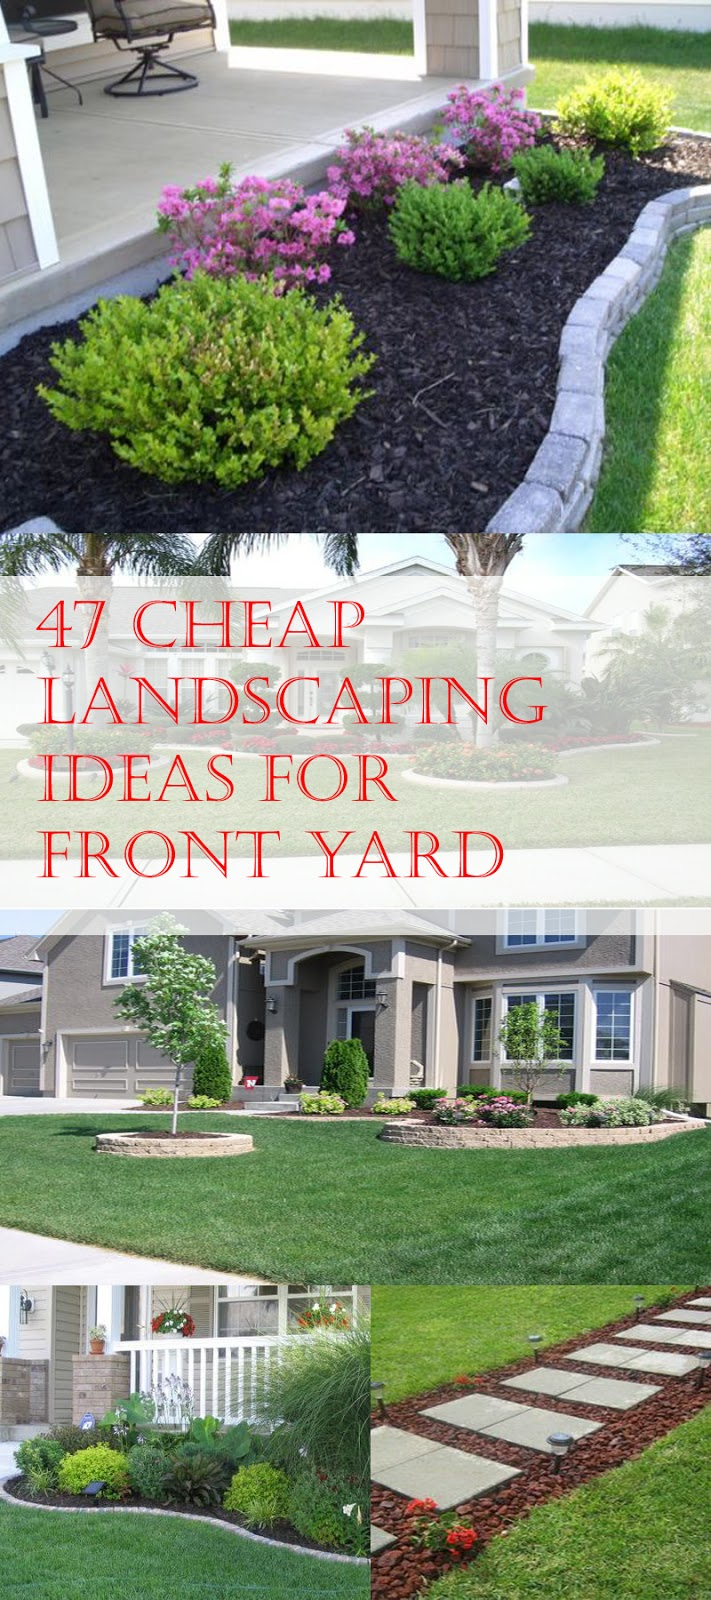 47 Cheap Landscaping Ideas For Front Yard - A Blog on Garden on Front Yard And Backyard Landscaping Ideas id=89482